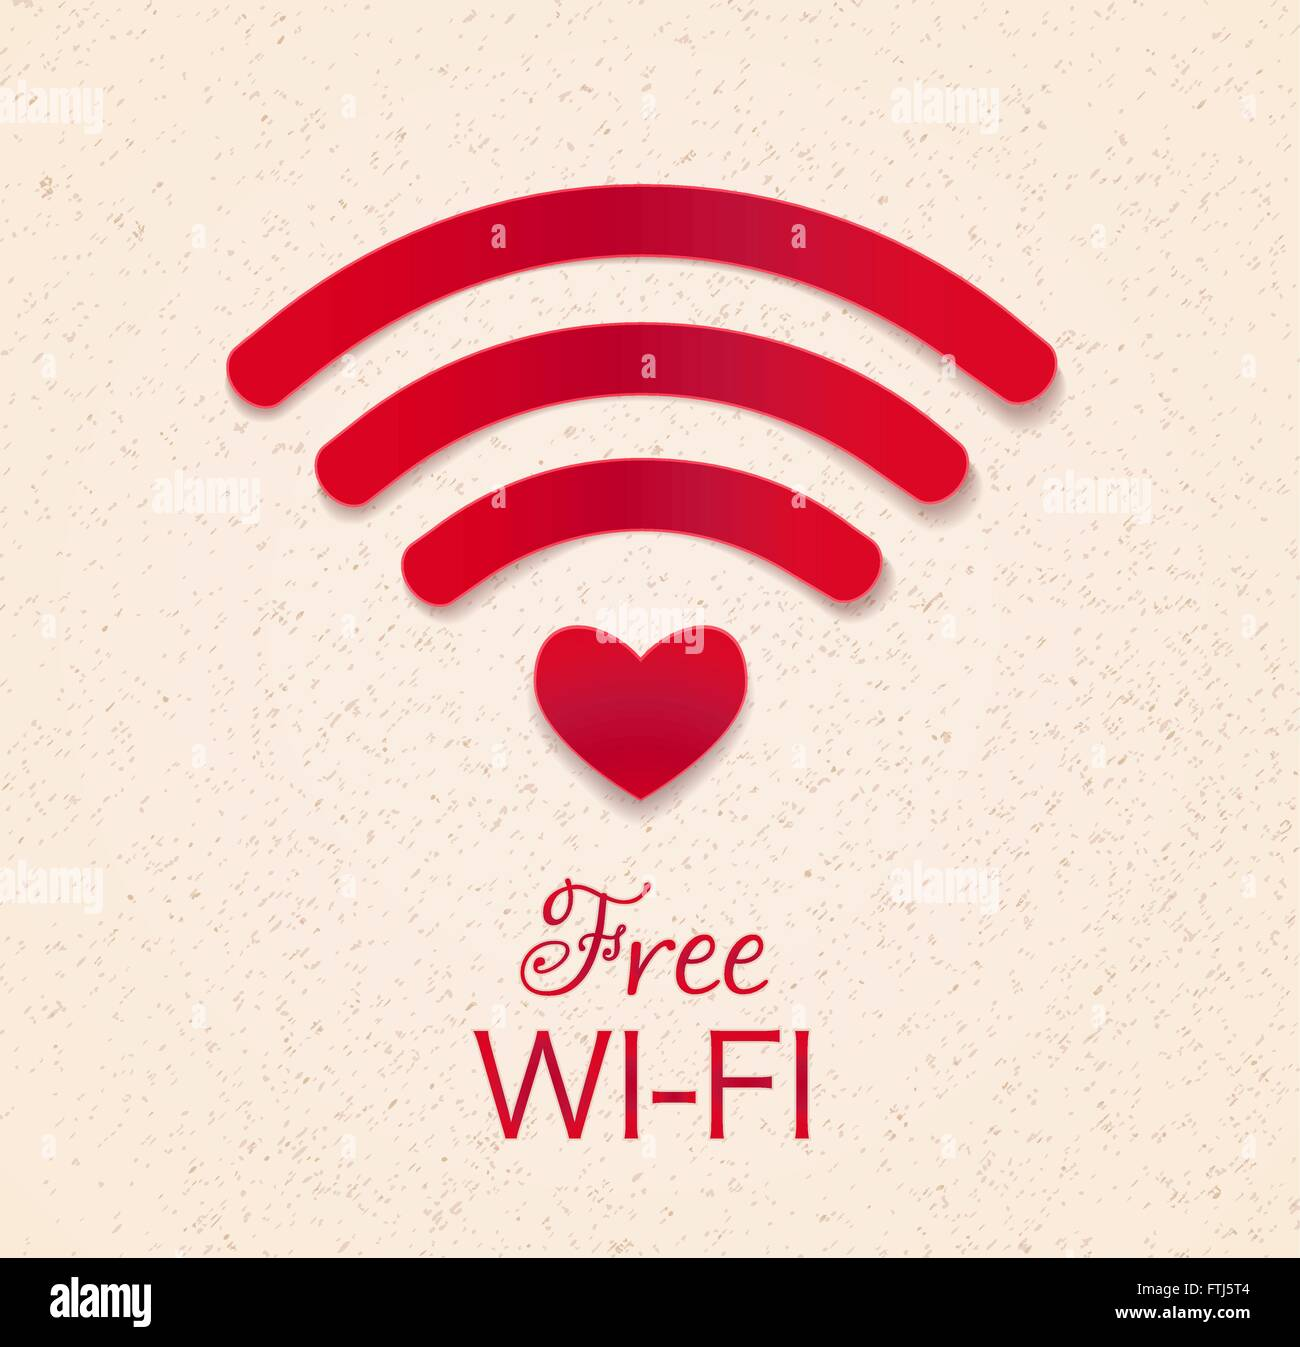 Wi Fi Red Icon Heart Shape Stockfotos & Wi Fi Red Icon Heart Shape ...